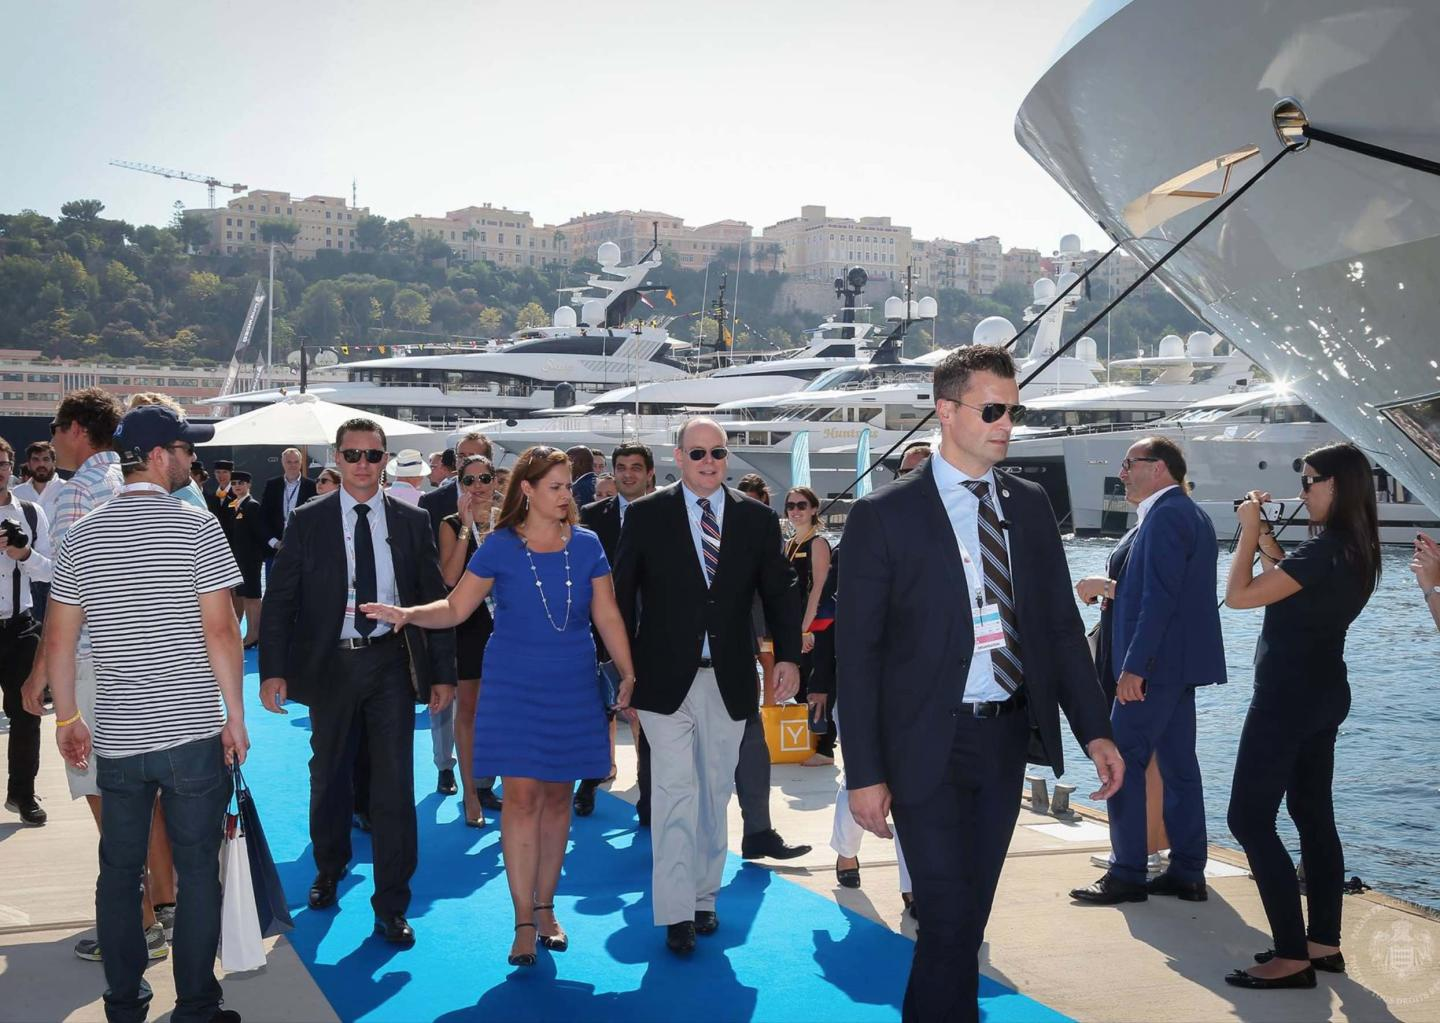 Official visit of Prince Albert II to the Monaco Yacht Show